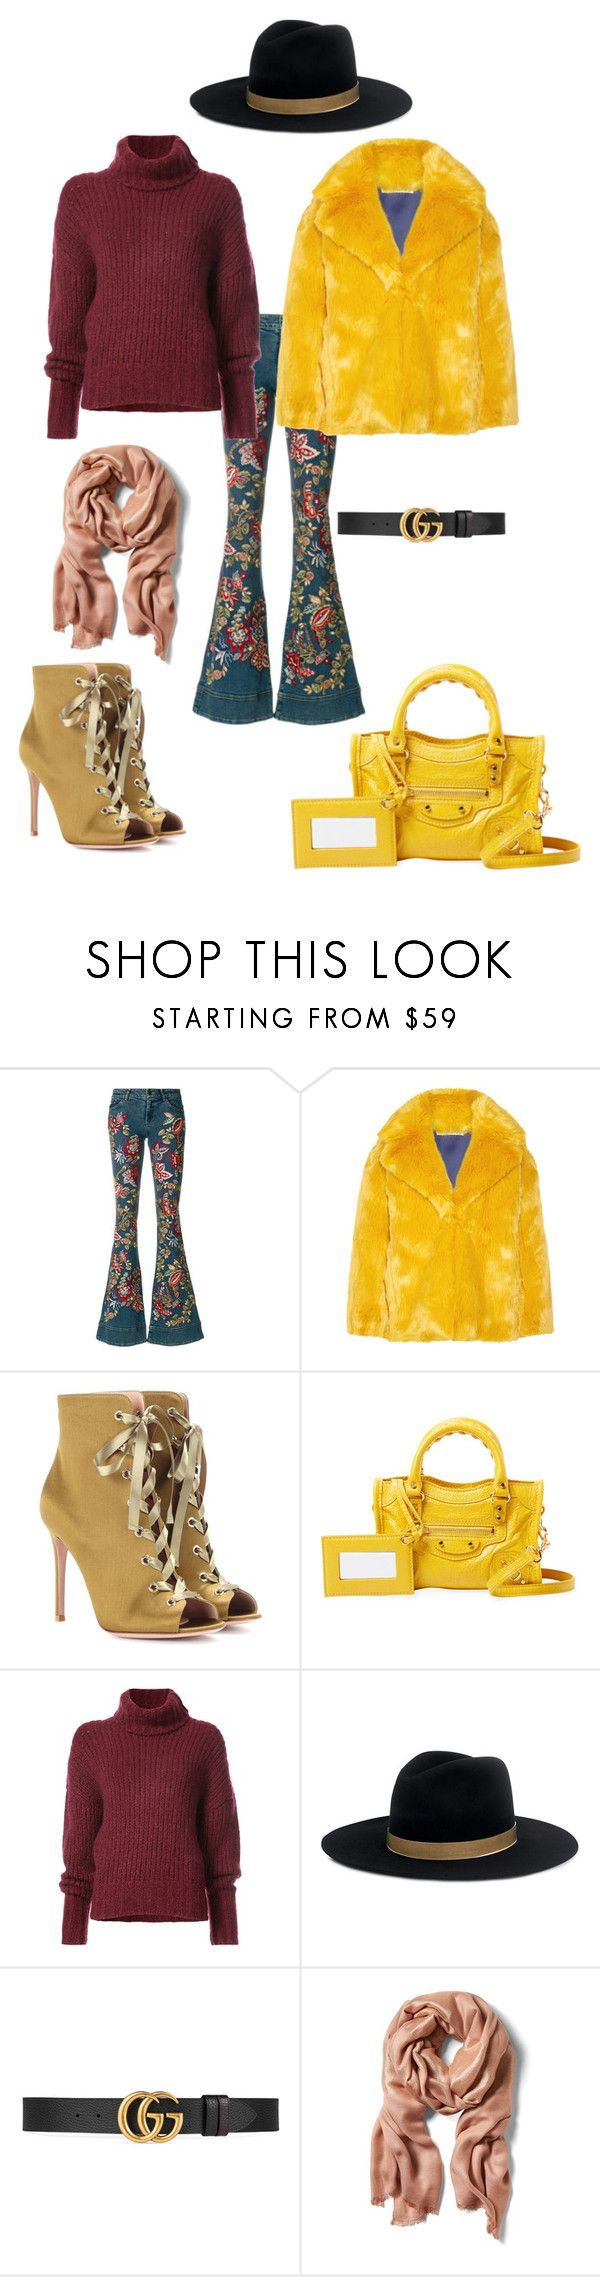 """Başlıksız #1088"" by gubse-oz ❤ liked on Polyvore featuring Alice + Olivia, Diane Von Furstenberg, Gianvito Rossi, Balenciaga, BY. Bonnie Young, Janessa Leone and Gucci"